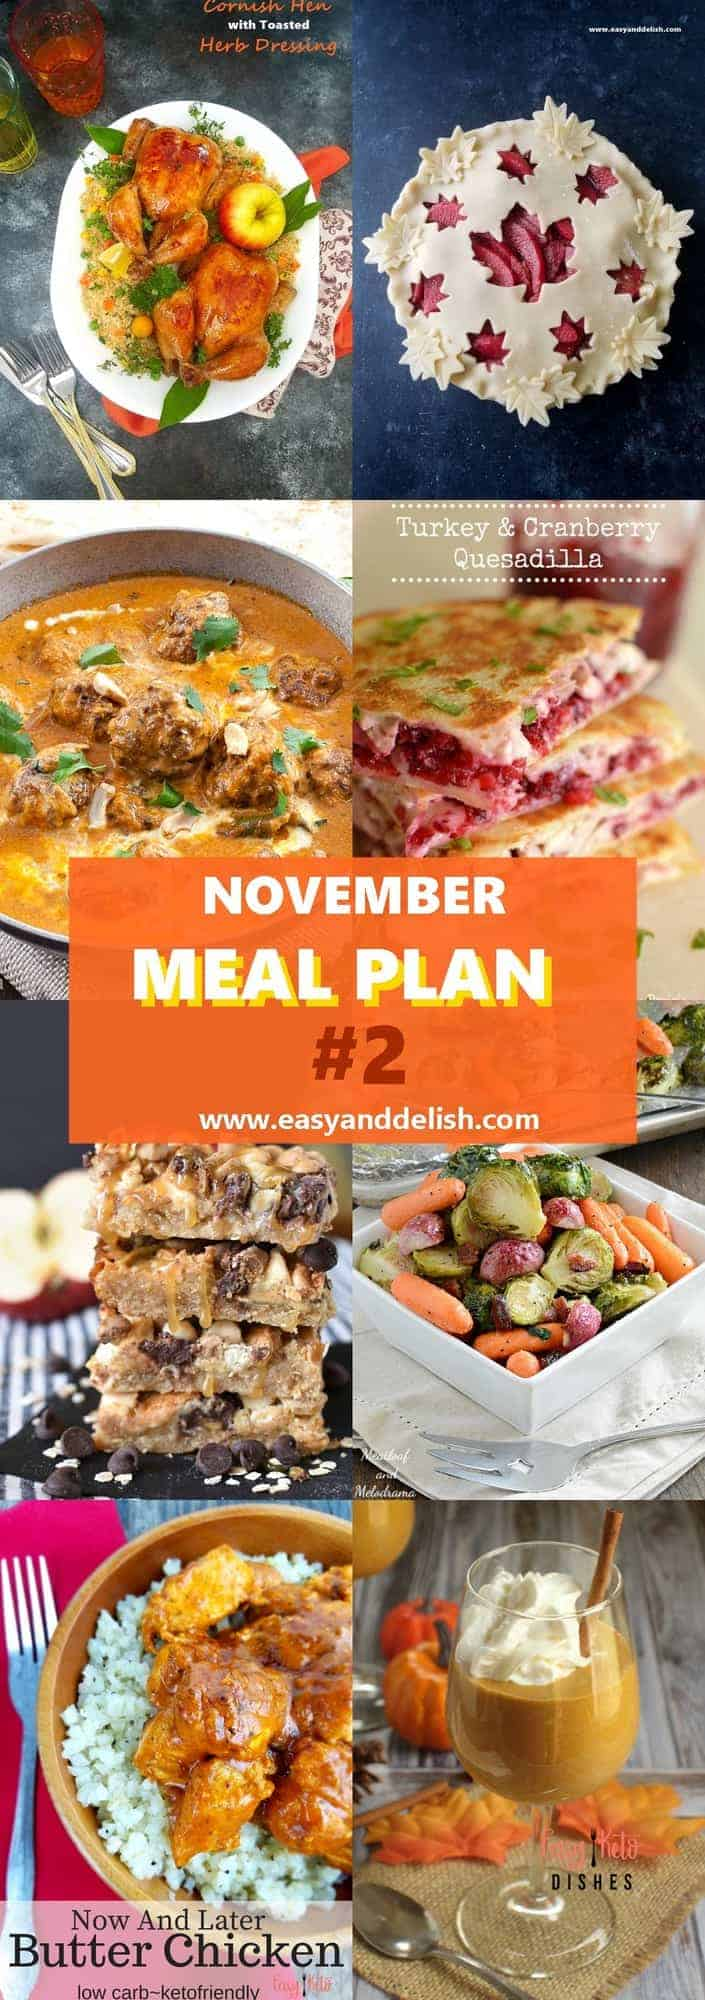 Eight combined images with dishes from November Monthly Meal Plan